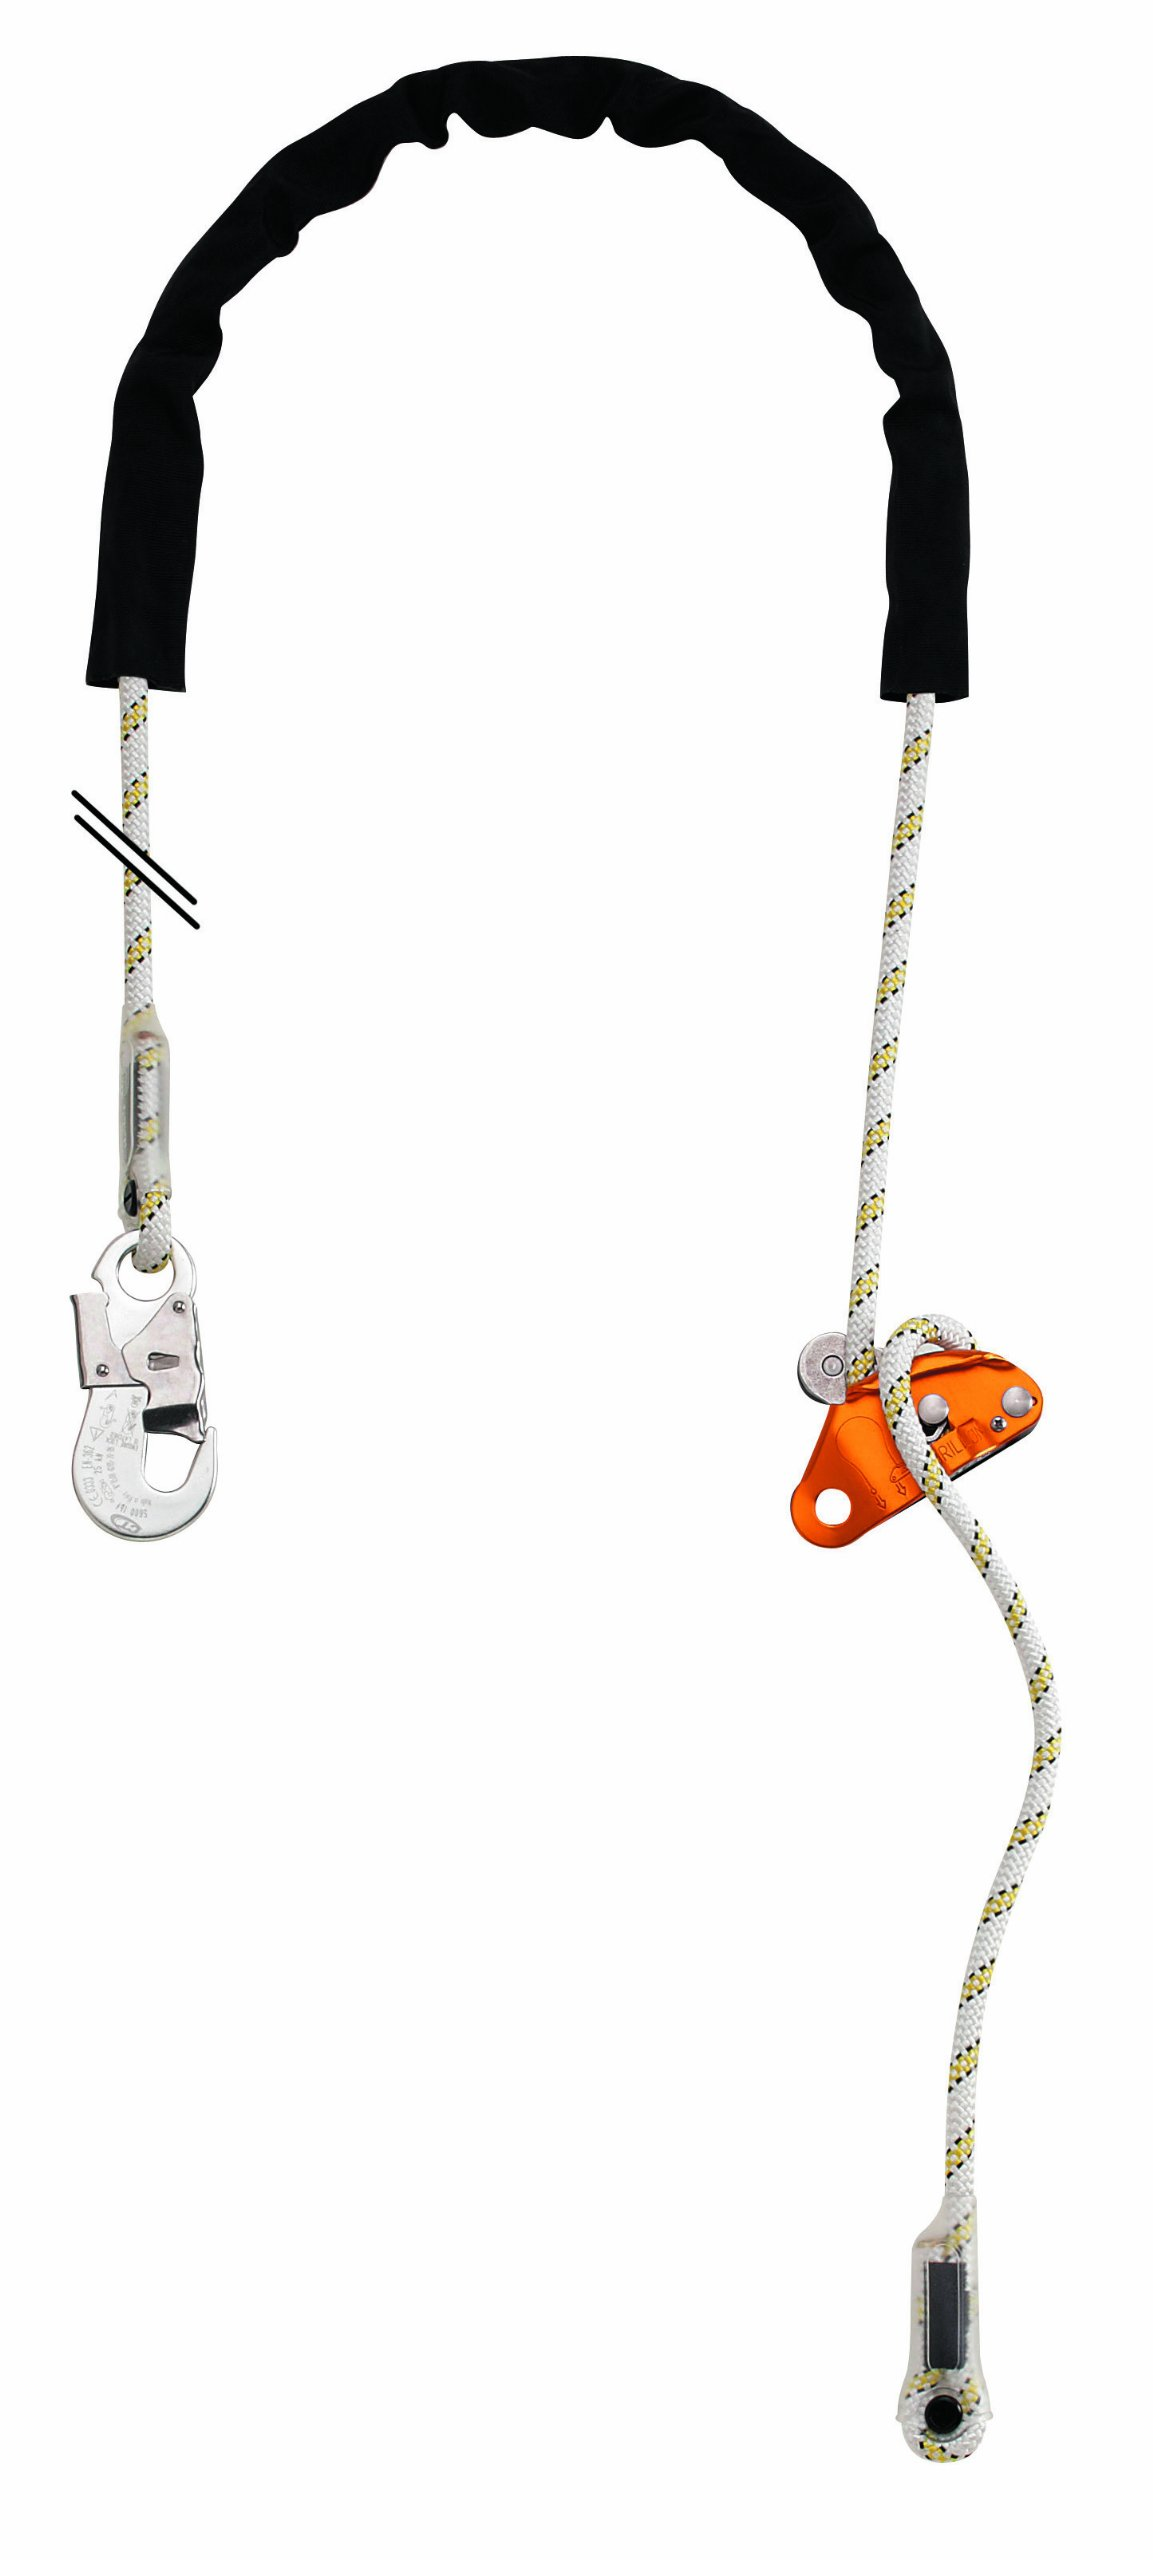 Petzl L52H003 Grillon Hook Adjustable Work Positioning Lanyard, Black/White, Standard by PETZL